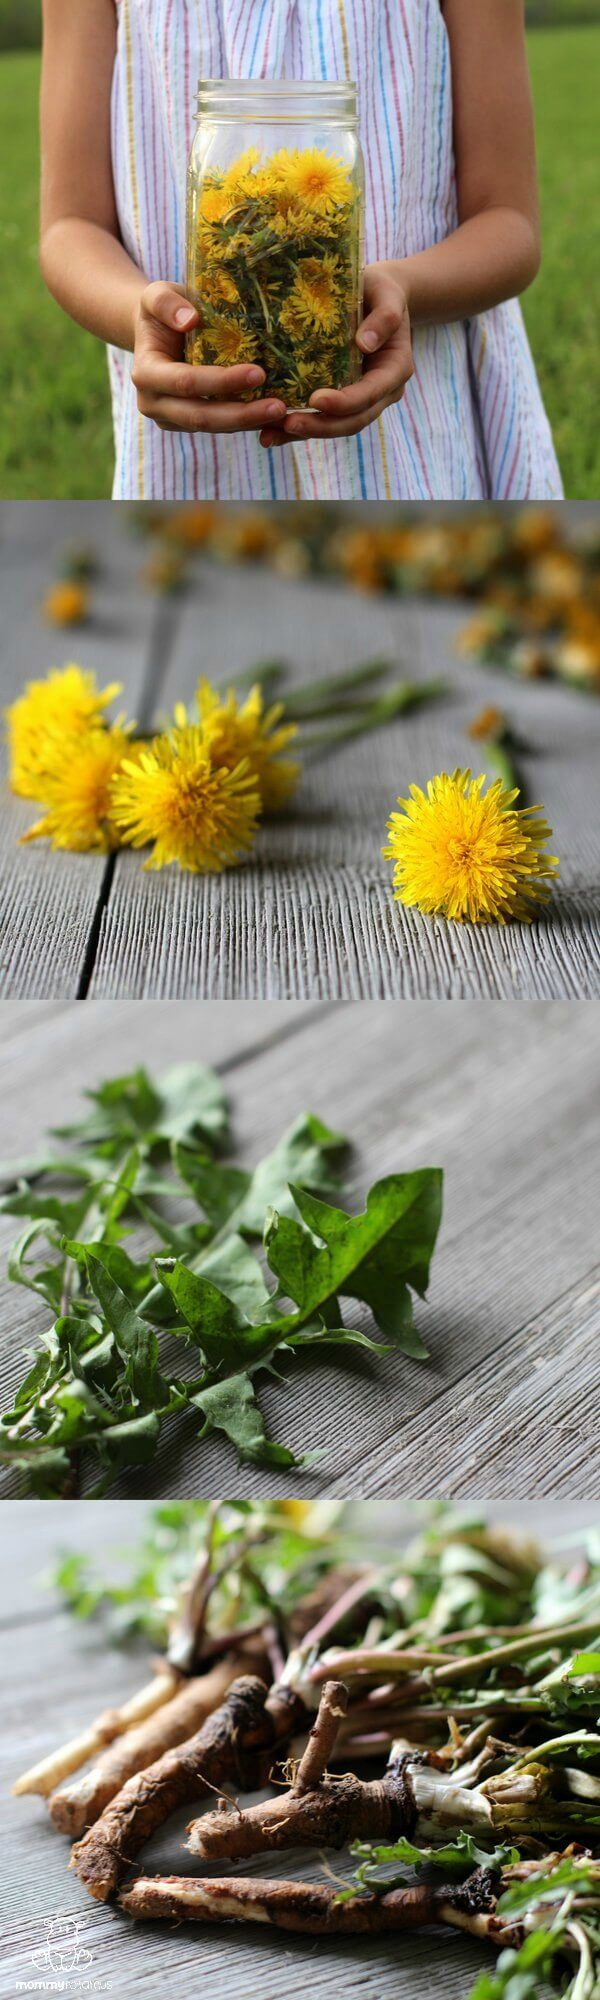 Dandelions are not a weed - they're a wildcrafting adventure waiting in your backyard! Dandelion flowers, roots and leaves can be made into salads, teas, decoctions, tinctures, syrups, wines, skin healing salves and more. Here's an overview of how to use them.